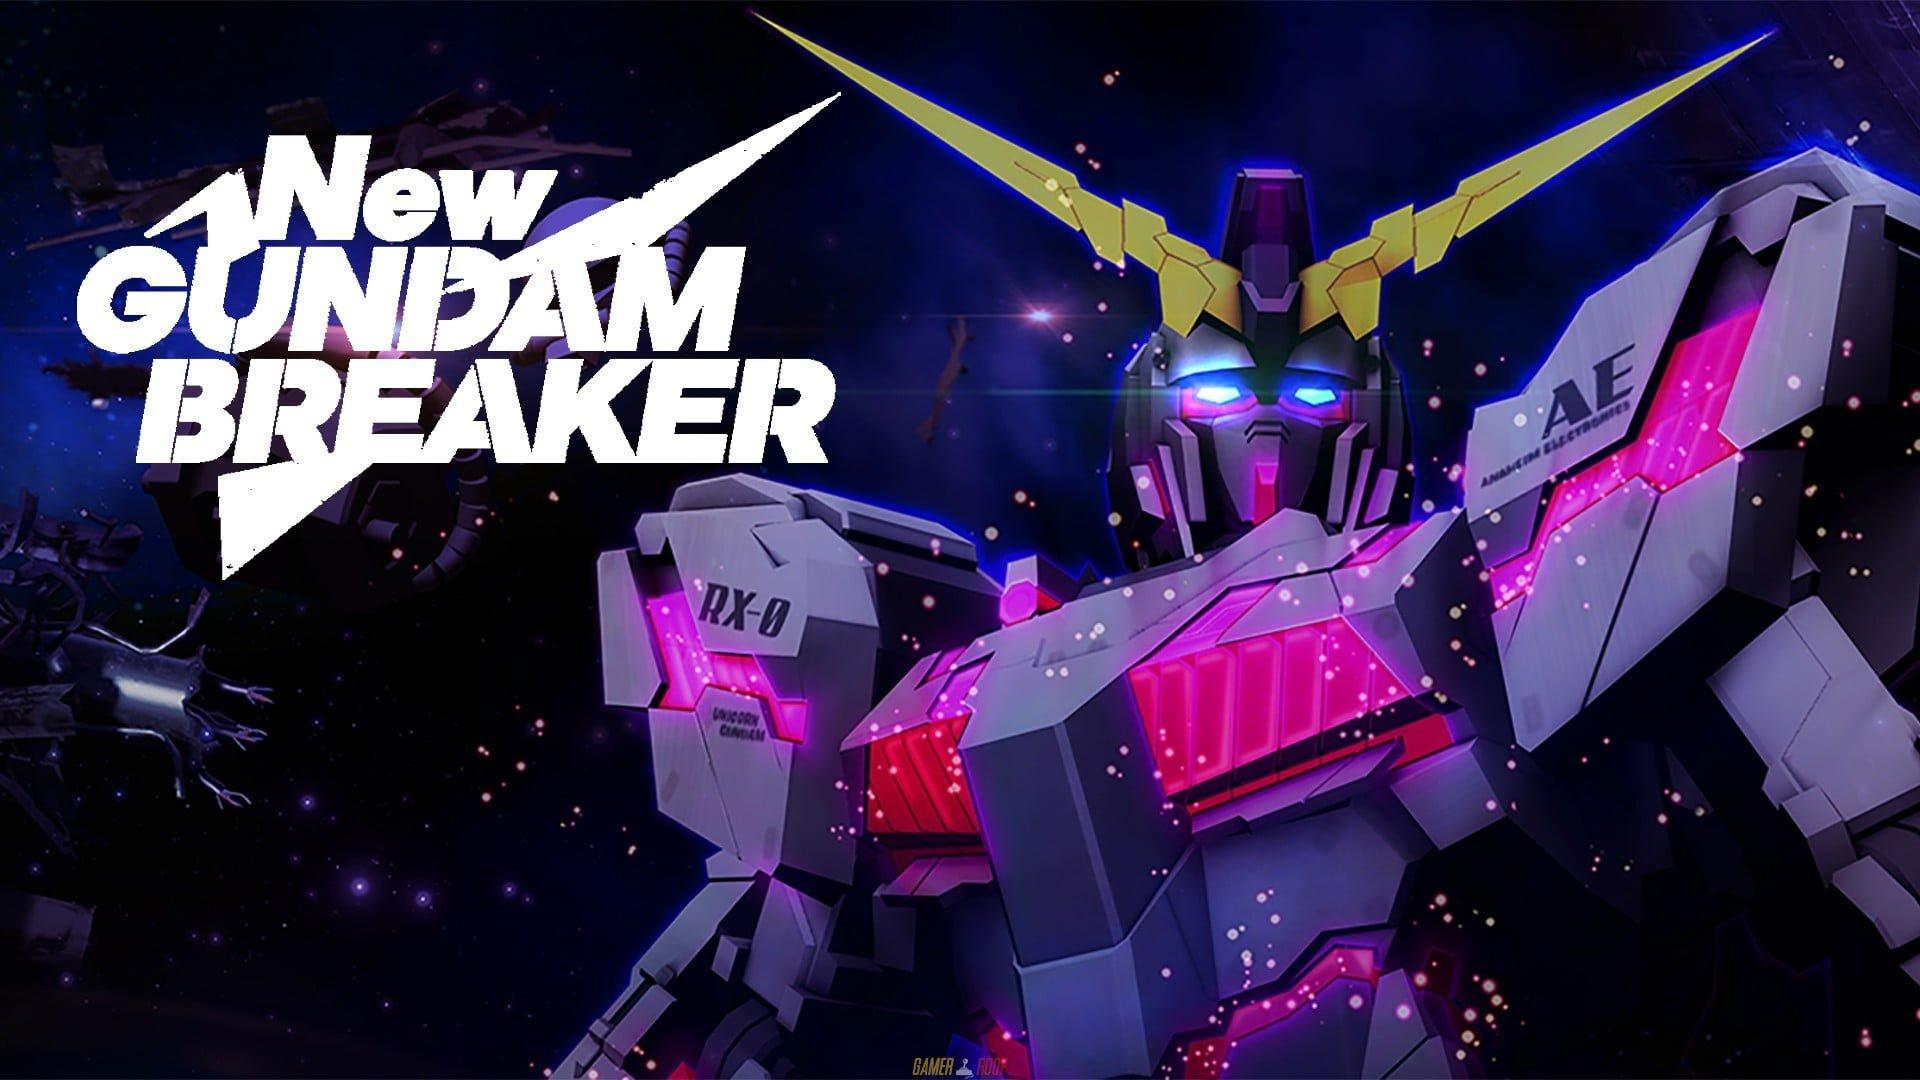 NEW GUNDAM BREAKER iOS/APK Version Full Game Free Download AllNewsVideosImagesMapsMore Settings Tools SafeSearch Size Color Type Time Usage Rights Wait while more content is being loaded The rest of the results might not be what you're looking for. See more anyway In response to a complaint we received under the US Digital Millennium Copyright Act, we have removed 3 result(s) from this page. If you wish, you may read the DMCA complaint that caused the removal(s) at LumenDatabase.org.